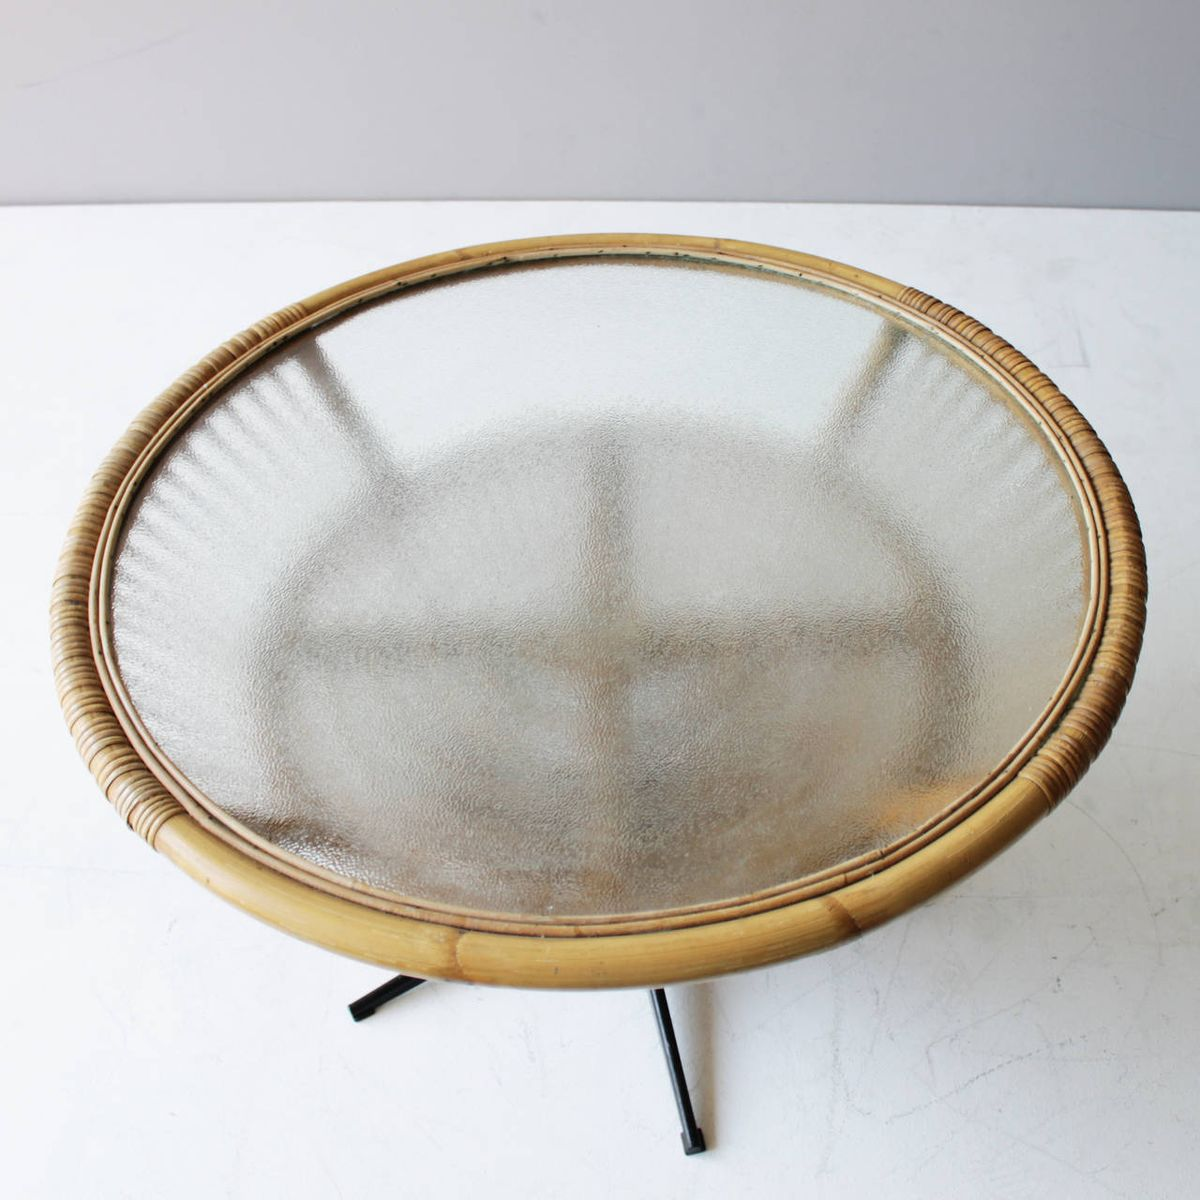 MidCentury Rattan Coffee Table c1969 for sale at Pamono